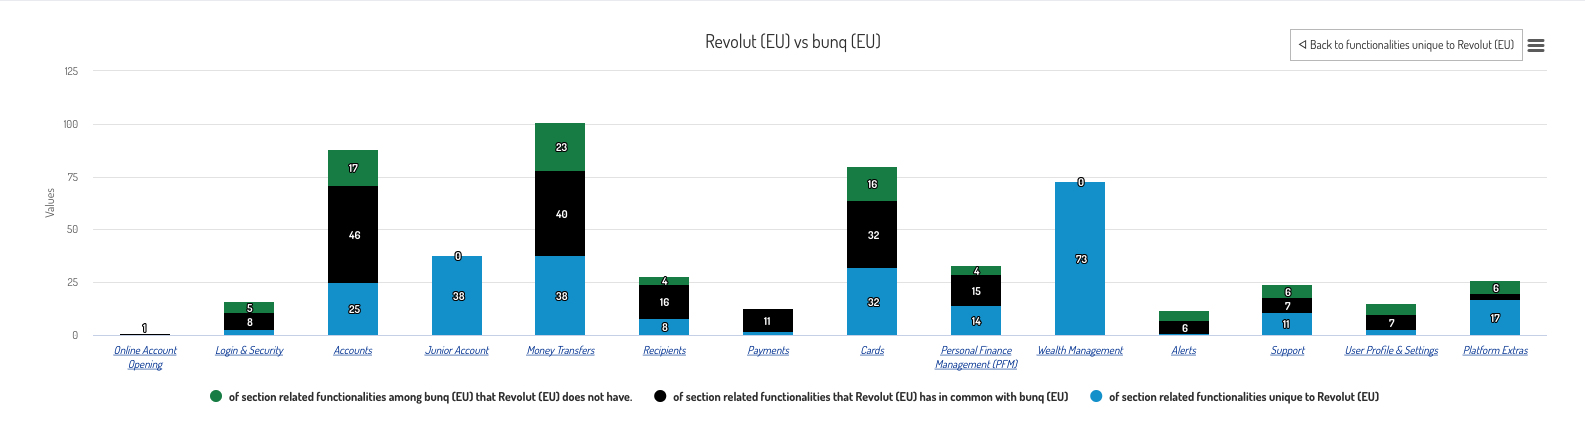 Gap analysis between Revolut and bunq